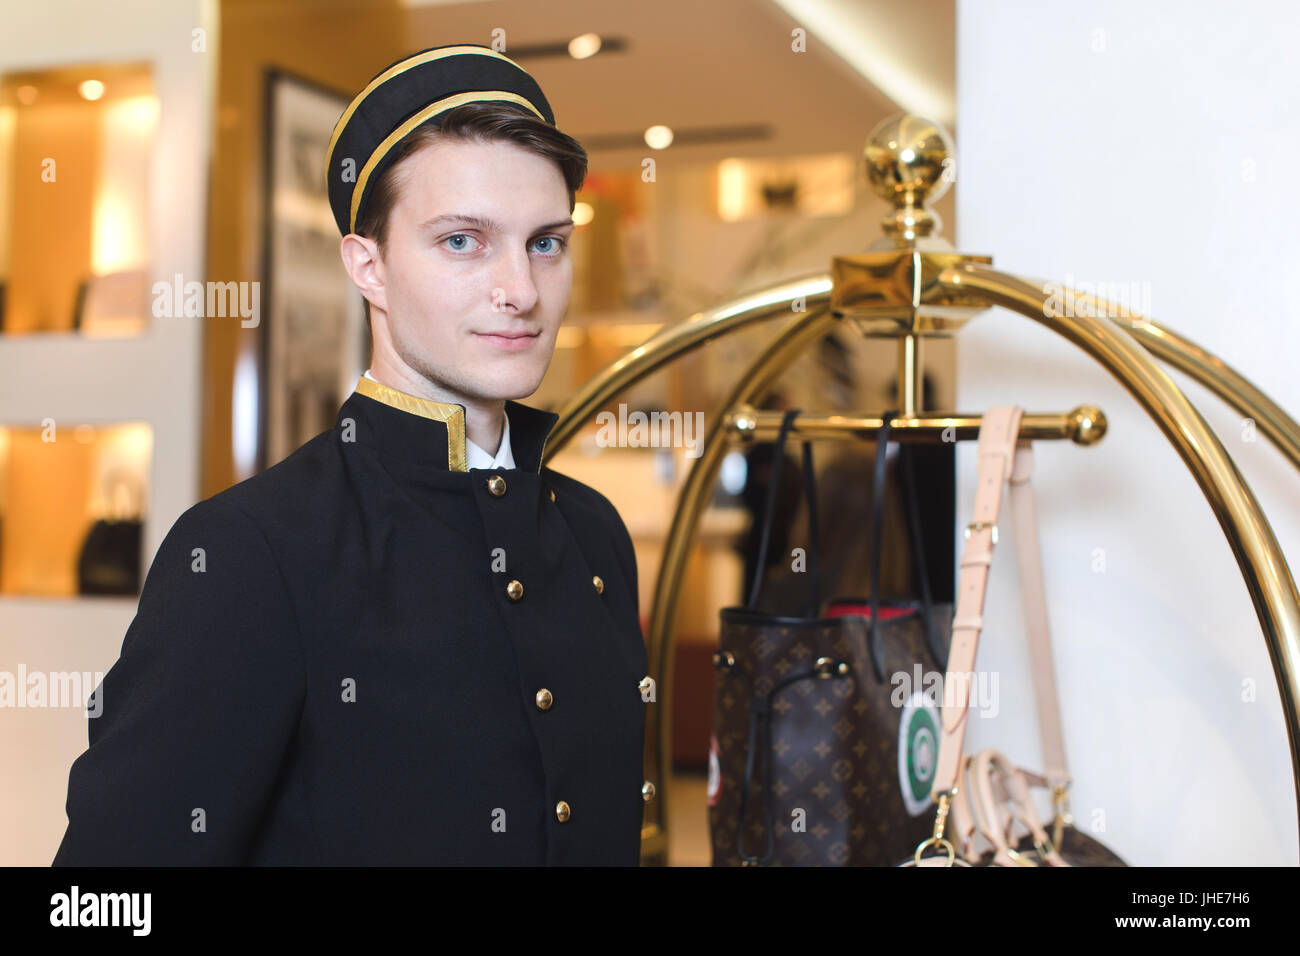 Smiling man in bellboy uniform standing with luggage cart - Stock Image